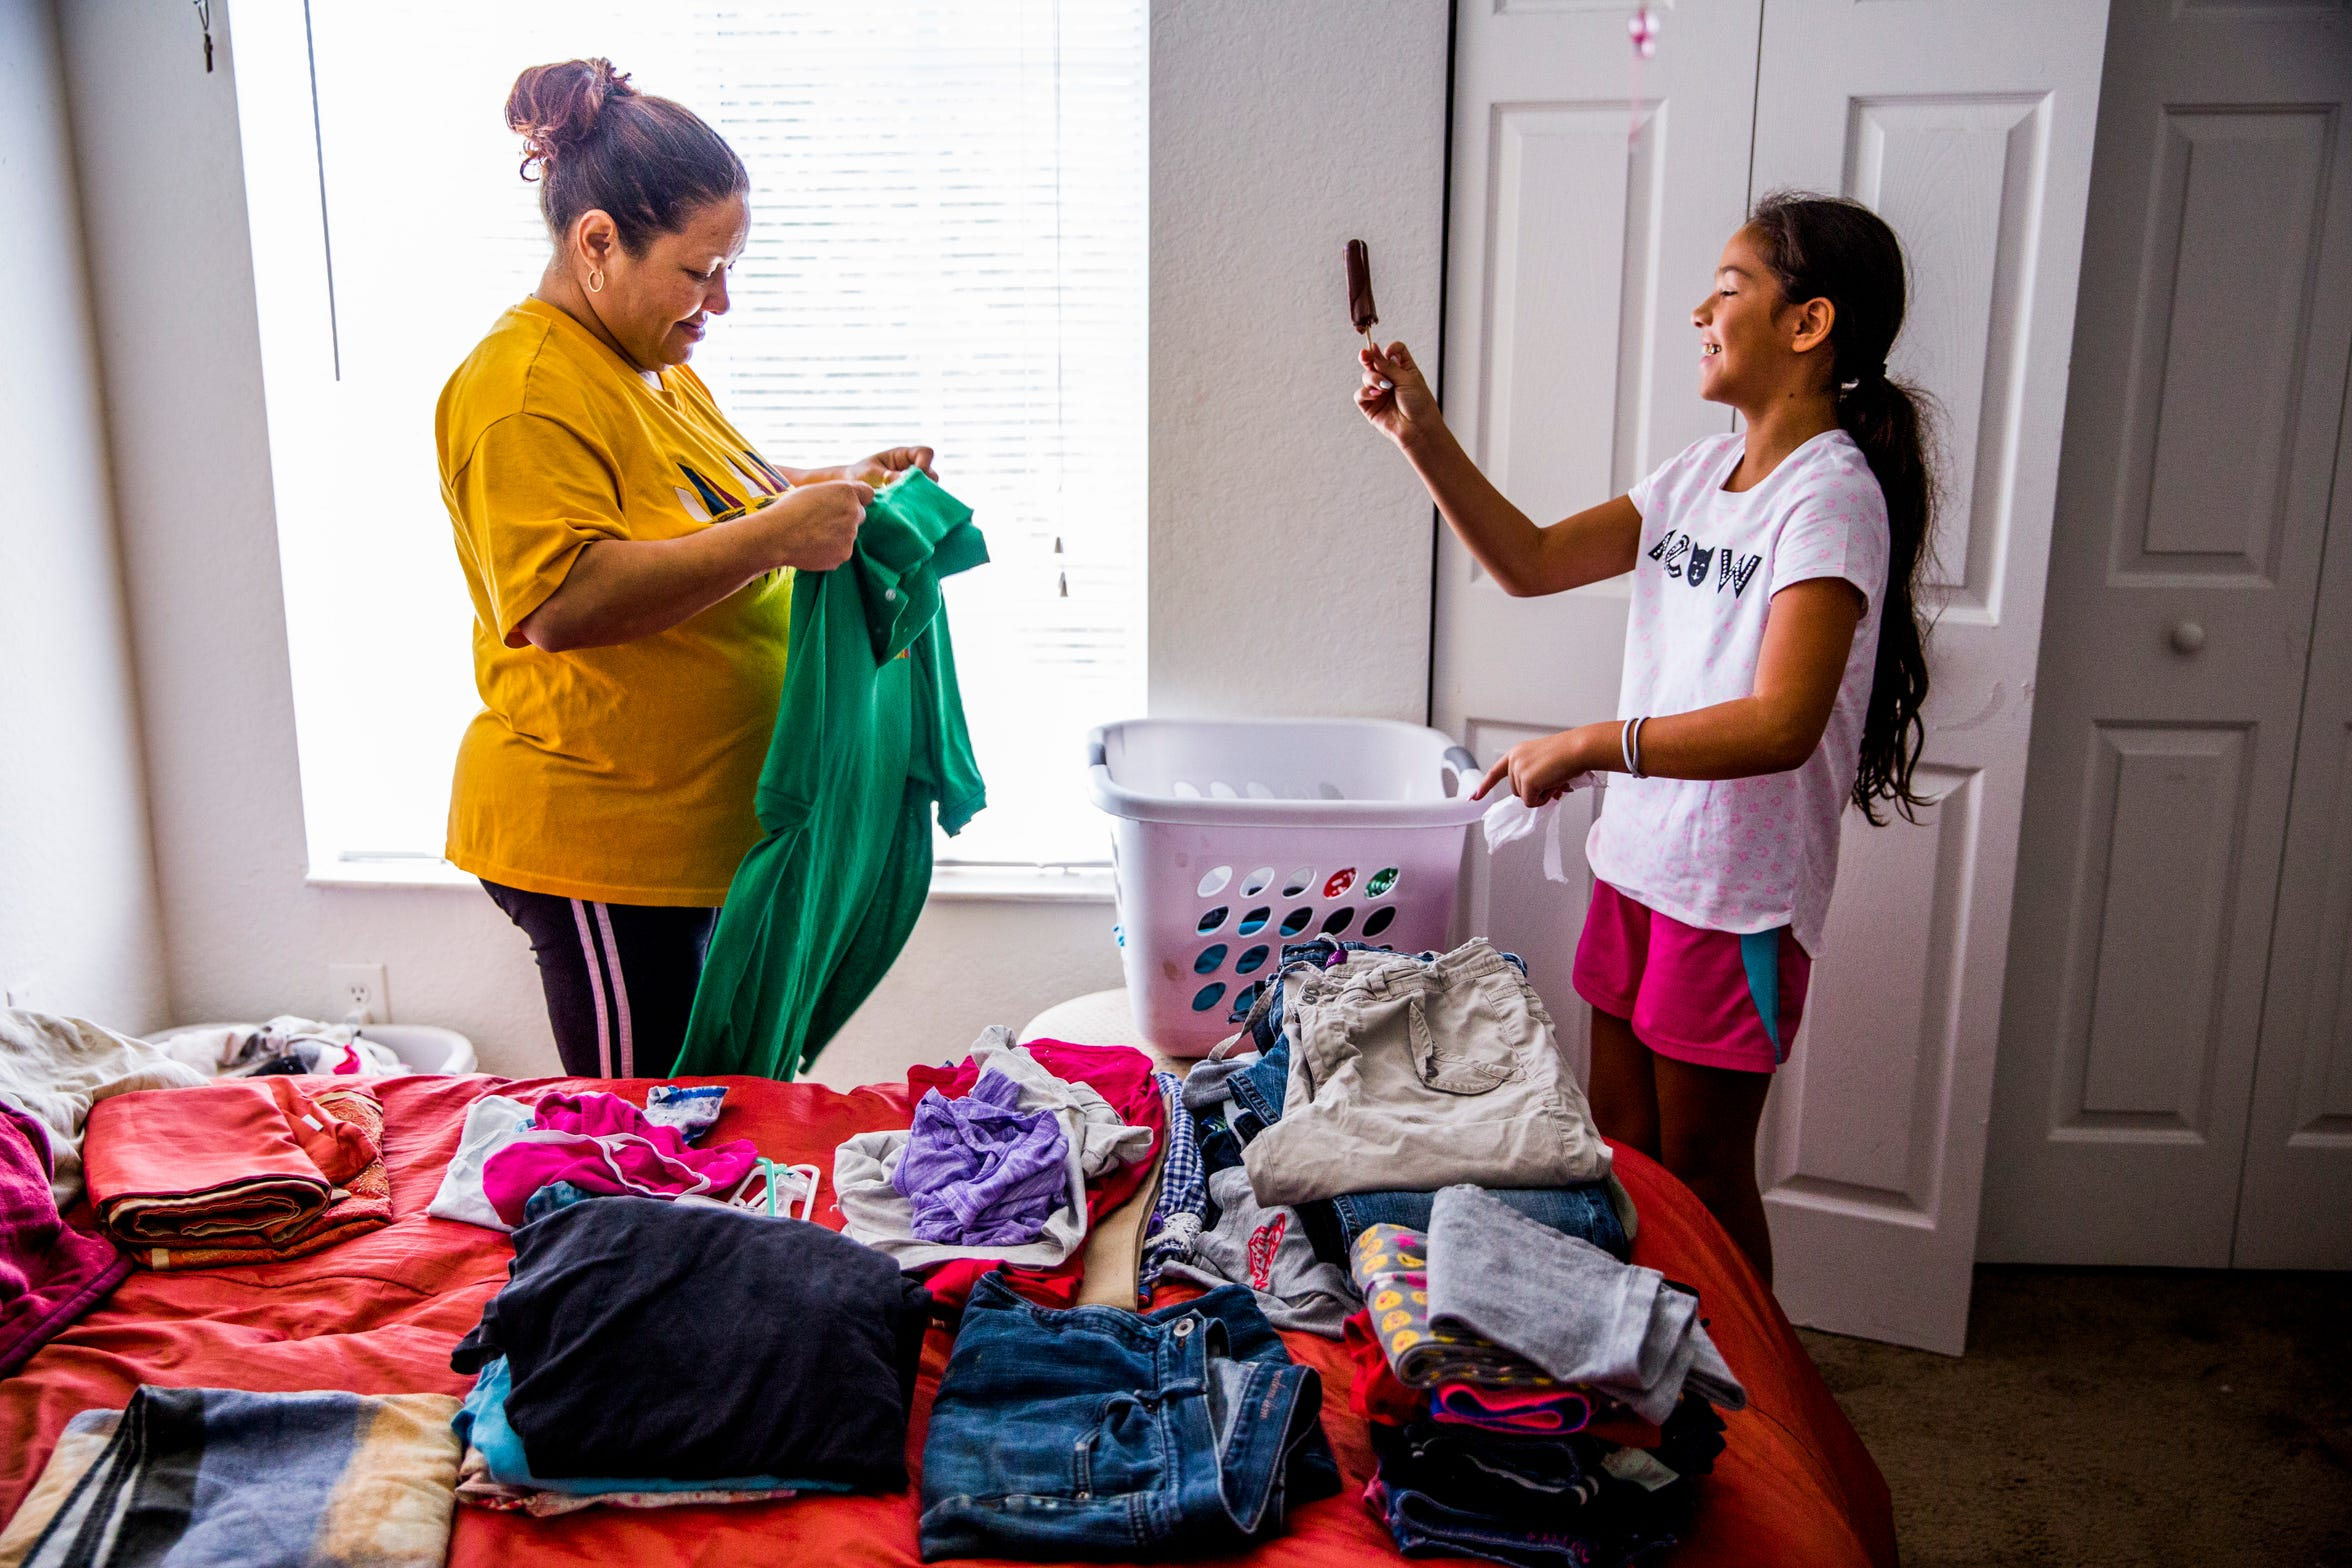 Ludi Rivera folds laundry with her daughter Alexia Trevino, 10, in their Immokalee apartment on Sunday, Sept. 2, 2018. The family's home was destroyed during Hurricane Irma last year and they are staying in an apartment until their home is rebuilt by several charities, including the Guadalupe Center, where Rivera works.